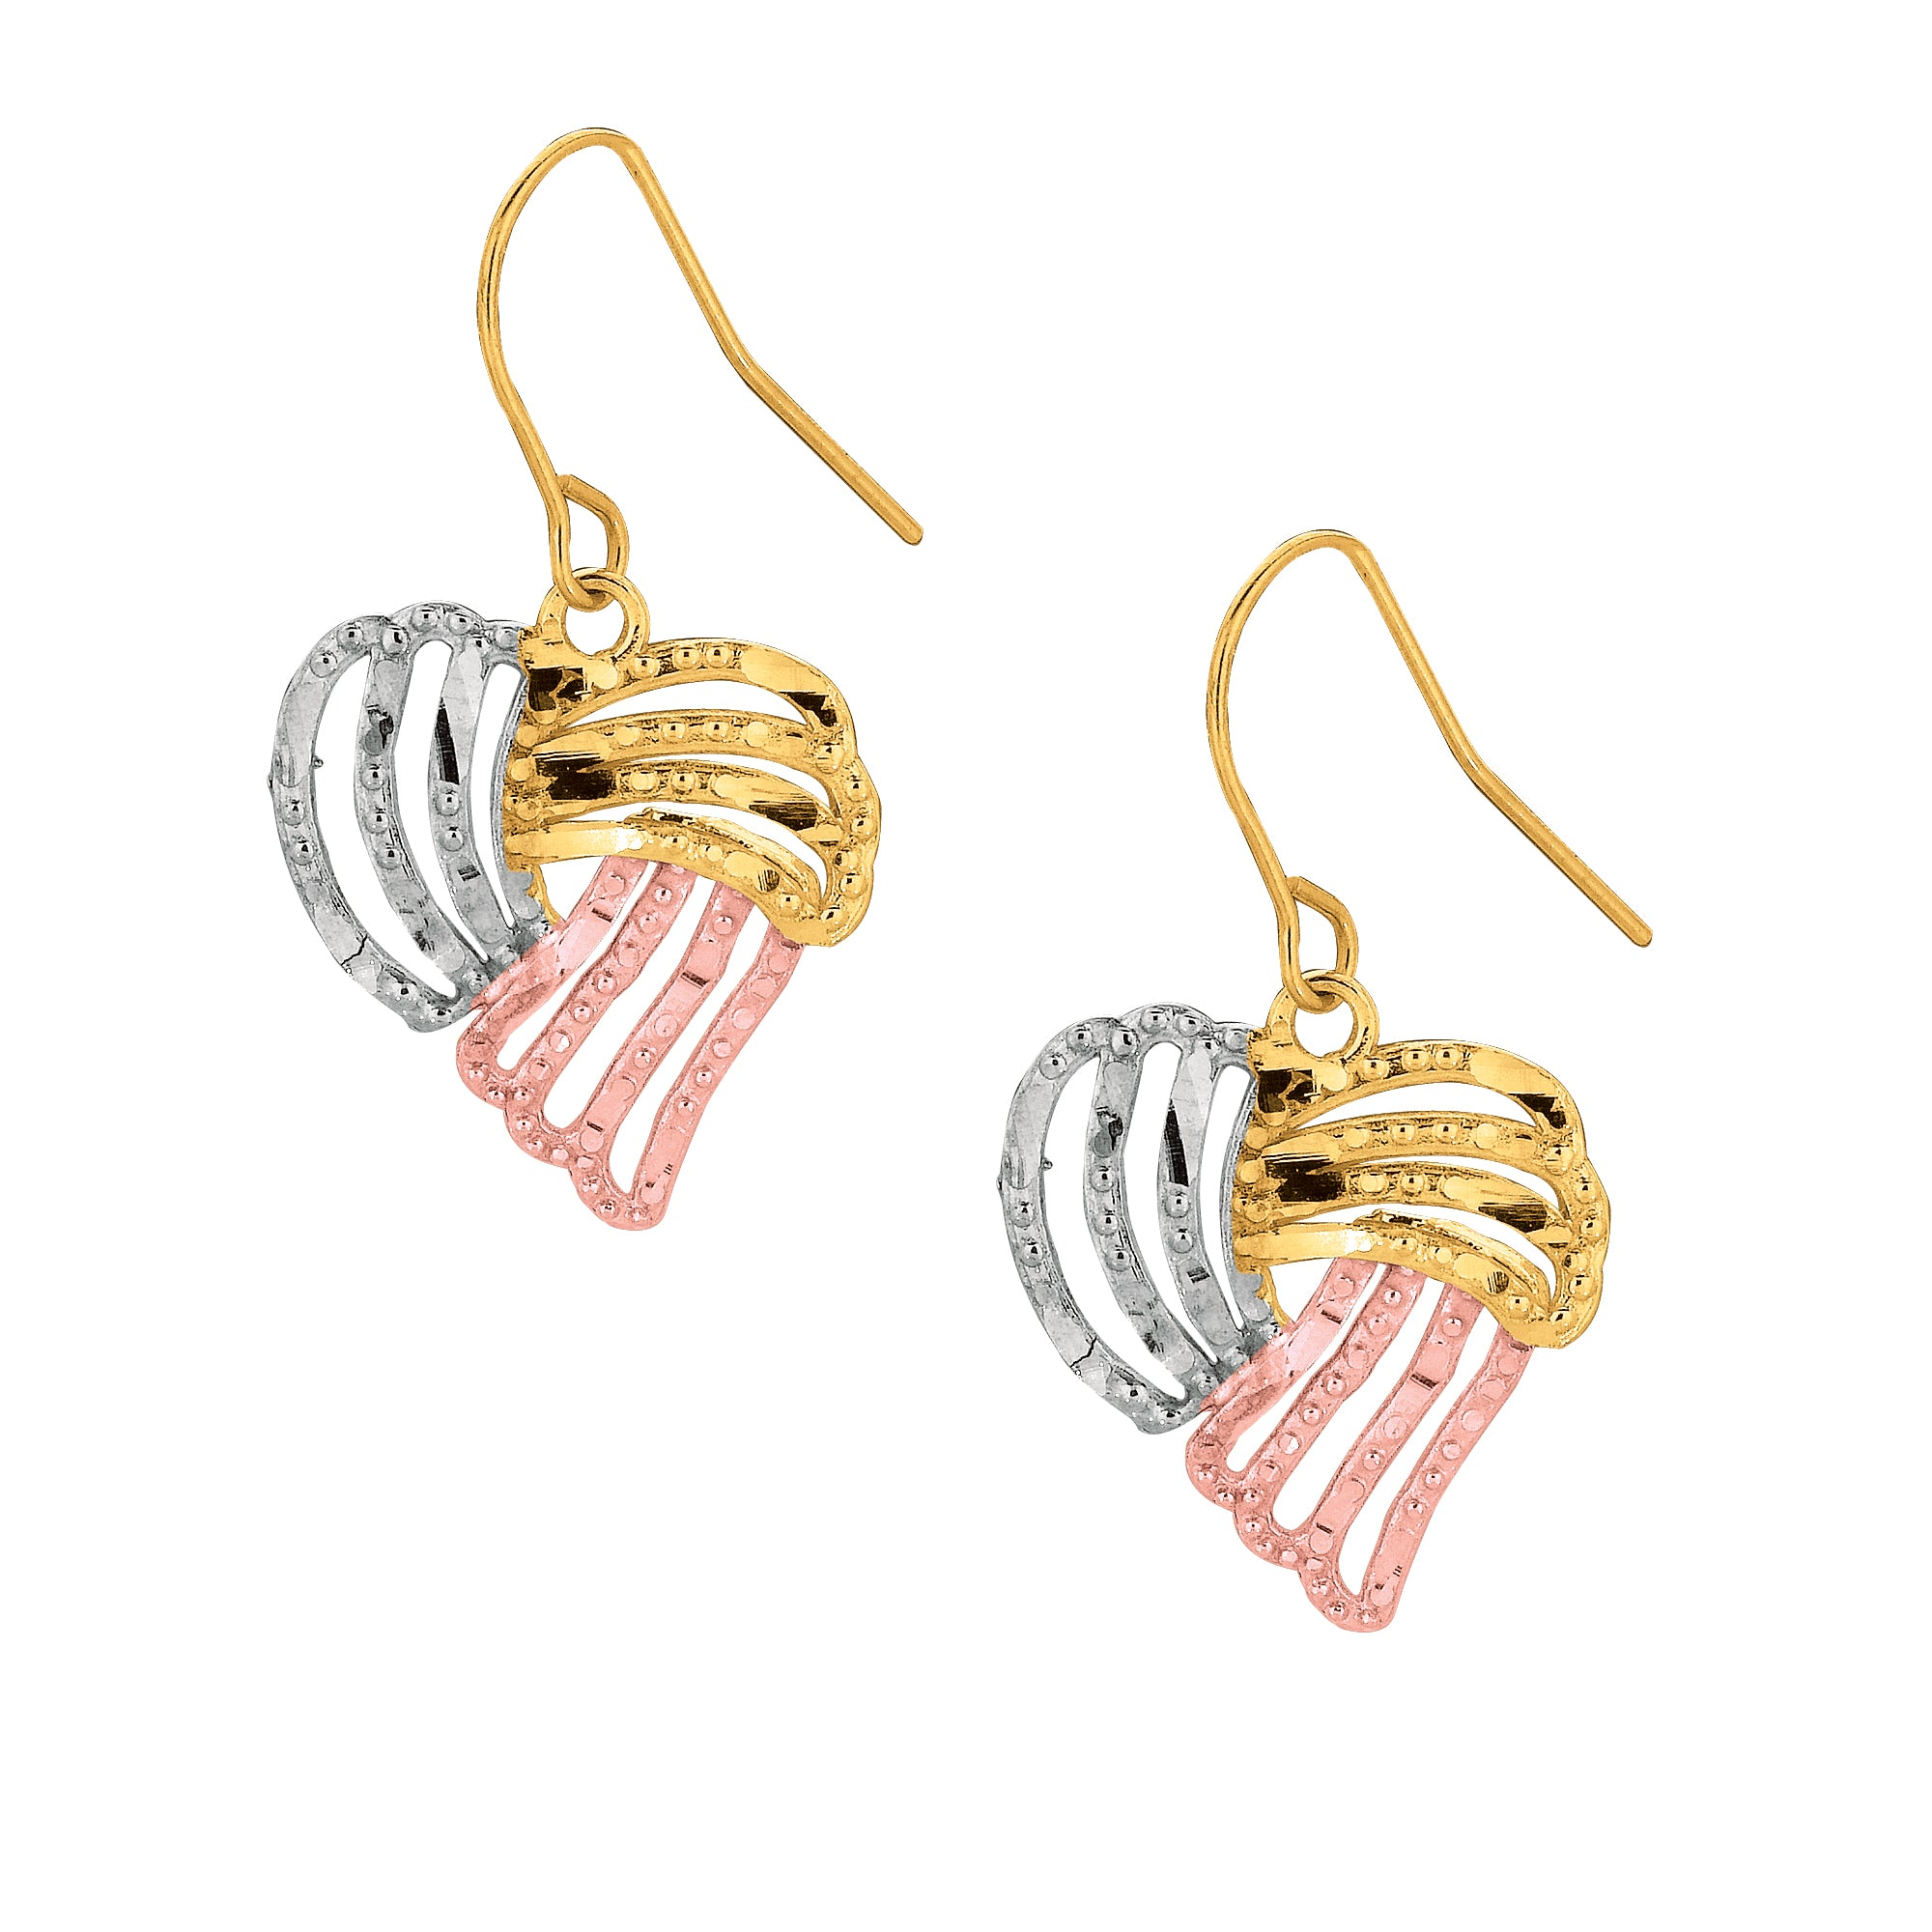 10K Gold Heart Dangle Earring